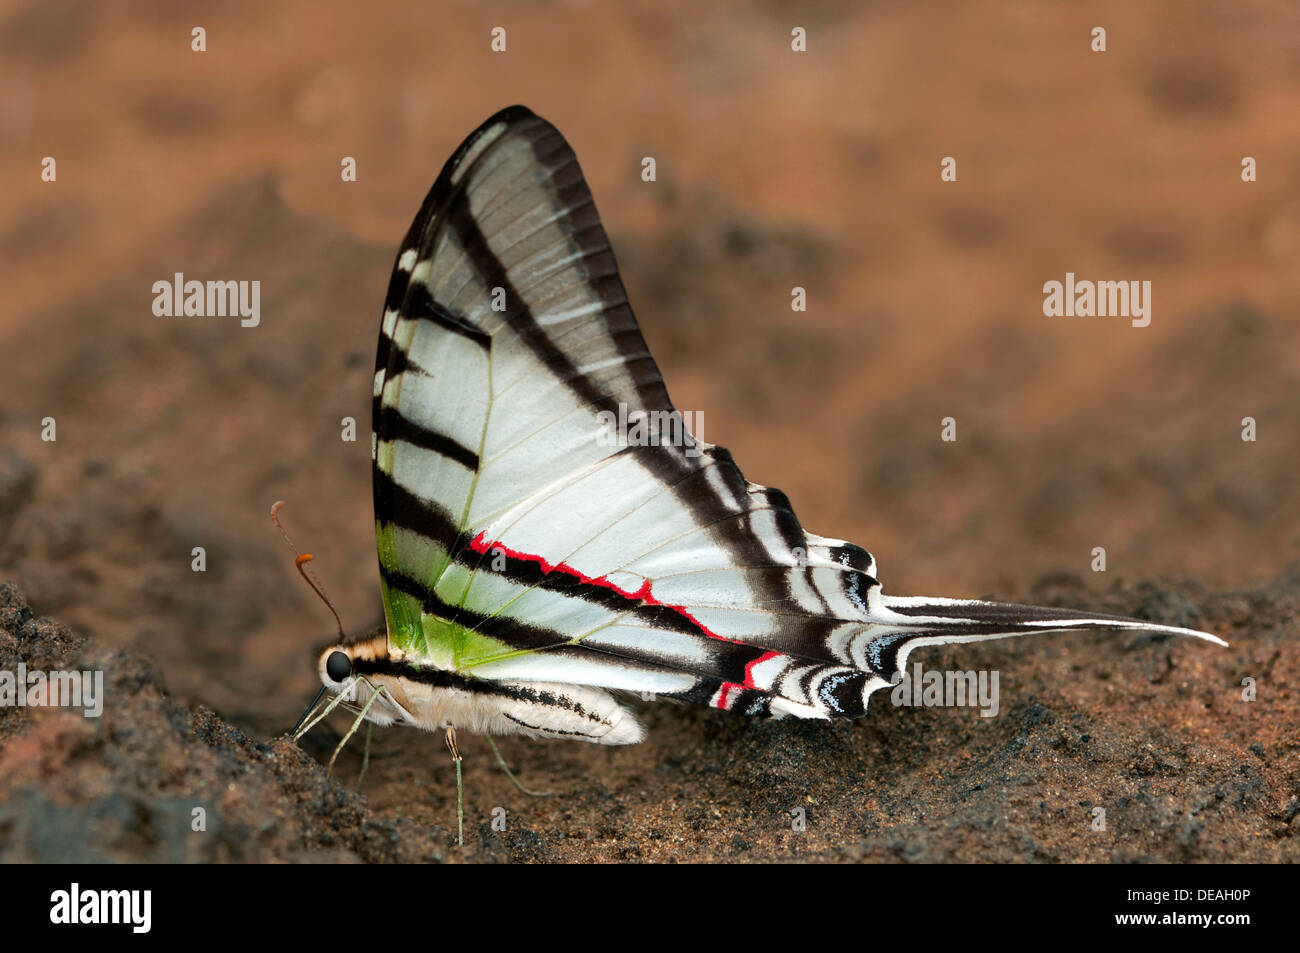 Swallowtail butterfly (Protesilaus glaucolaus), Tambopata Nature Reserve, Madre de Dios, Madre de Dios Region, Peru - Stock Image